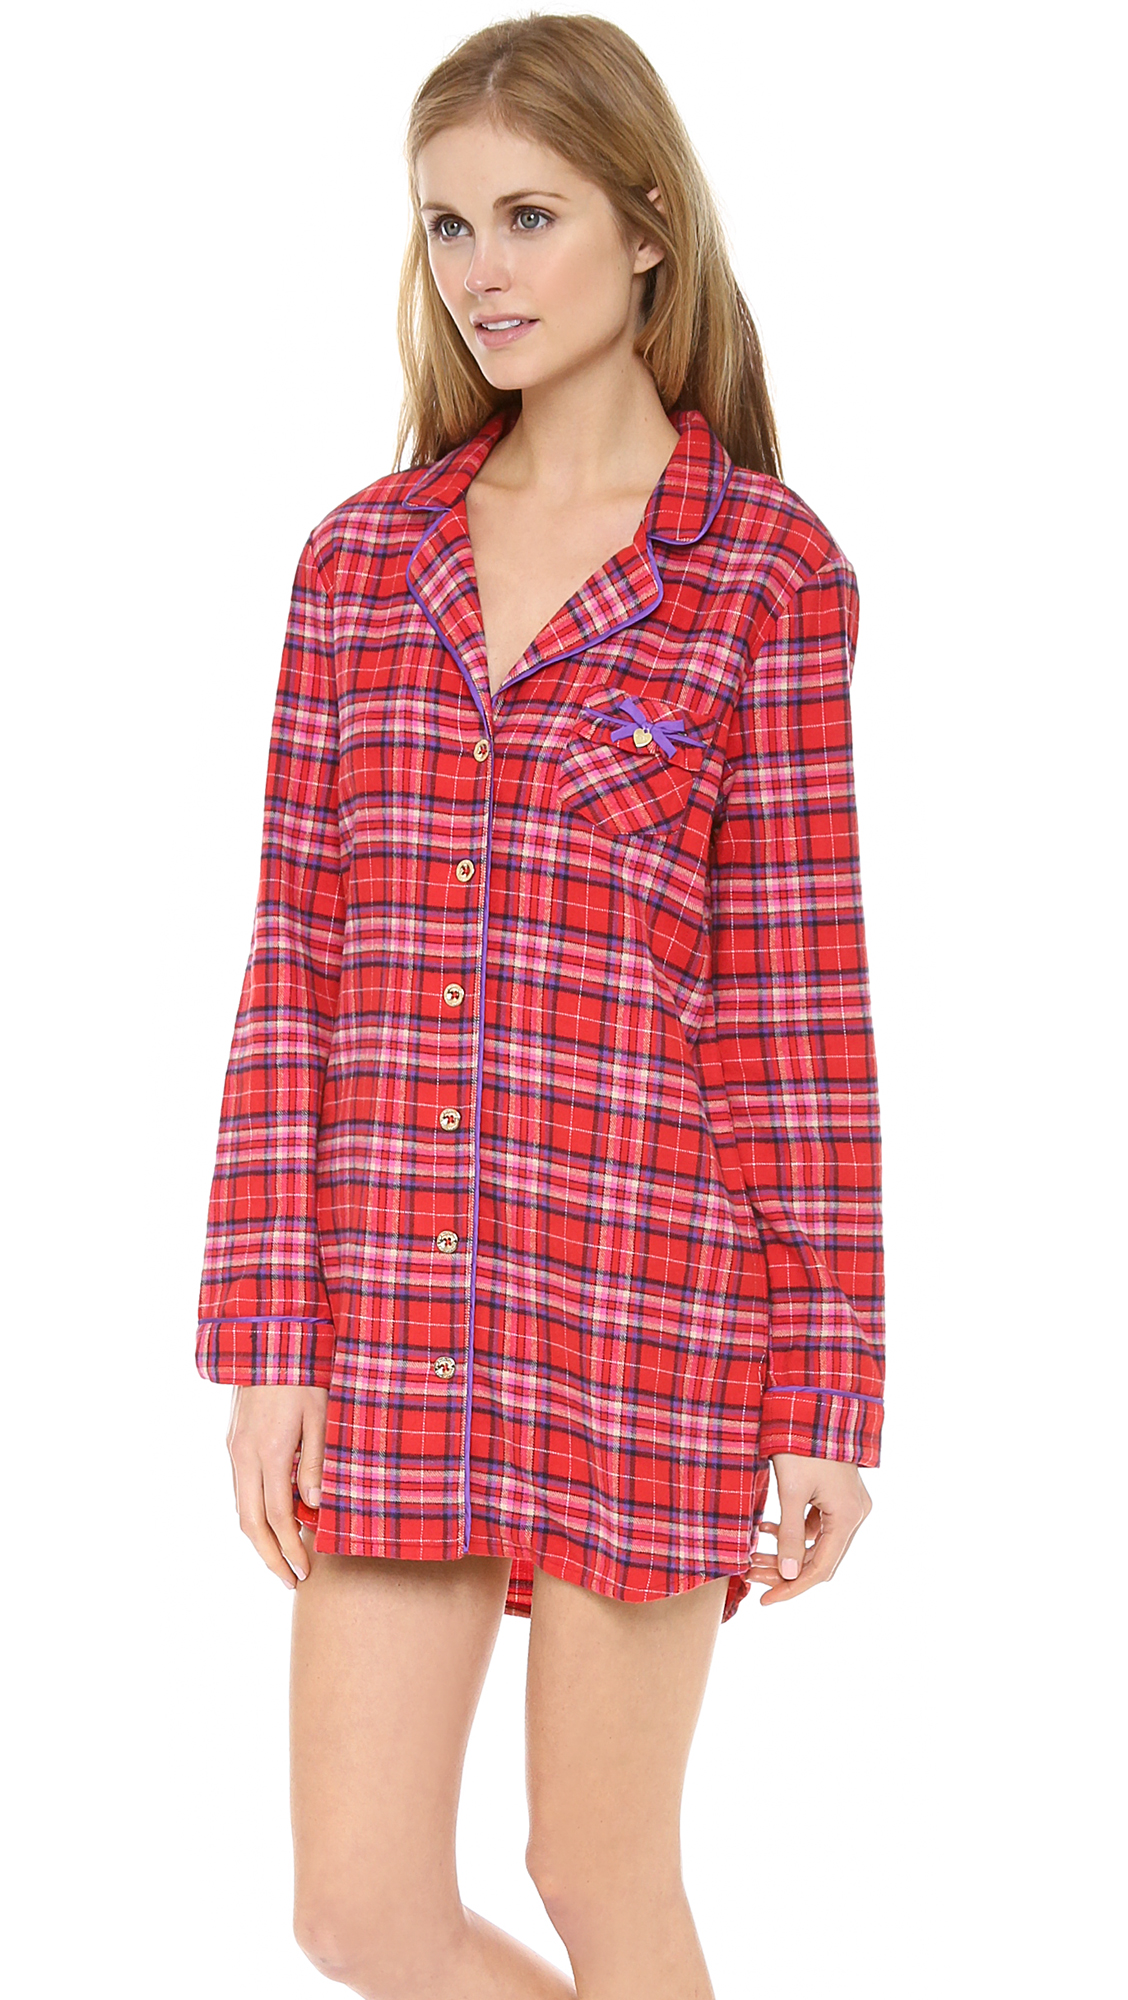 Wittmann Textiles Company Classic, soft Cotton, Men's Flannel Nightshirt for men and women (unisex - ladies use one size smaller than they would normally wear on this men's style only) offer a 3 button front, generous full cut sizing in five sizes for a perfect fit, full length sleeves, chest pocket, a 50 inch length from shoulder to bottom hem, and % ring-spun cotton.